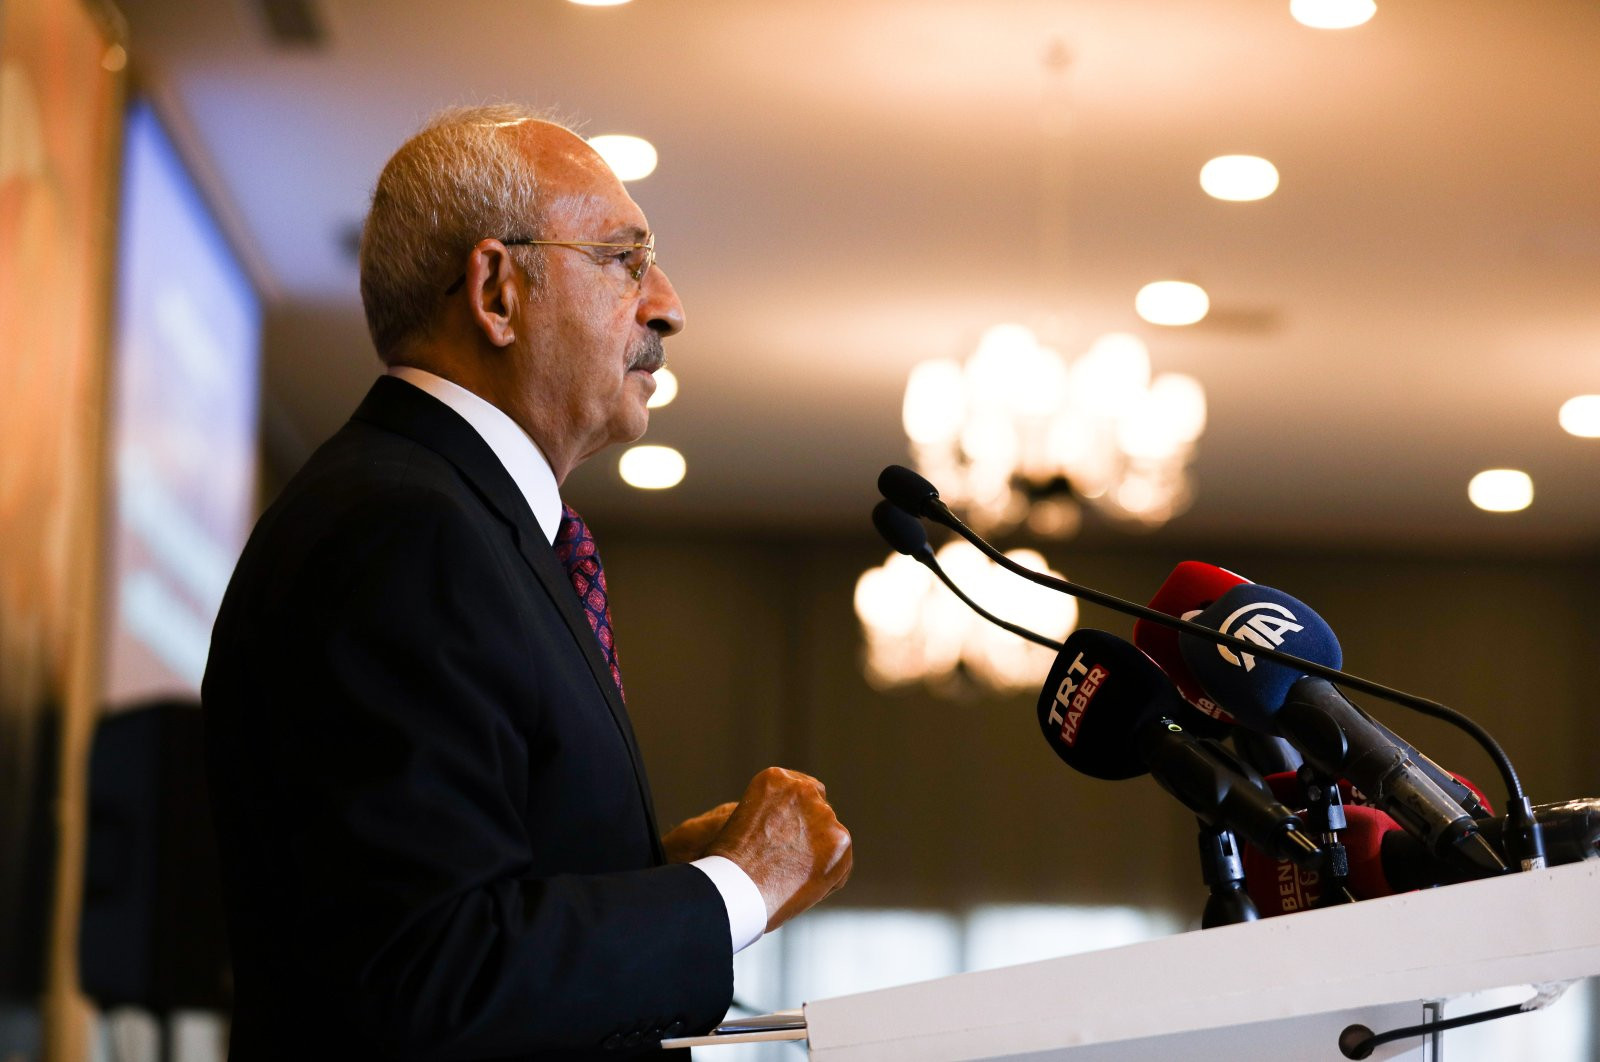 Main opposition Republican People's Party (CHP) Chairman Kemal Kılıçdaroğlu speaks during a press conference in capital Ankara, Turkey, Sept. 29, 2021. (Photo by Getty Images)